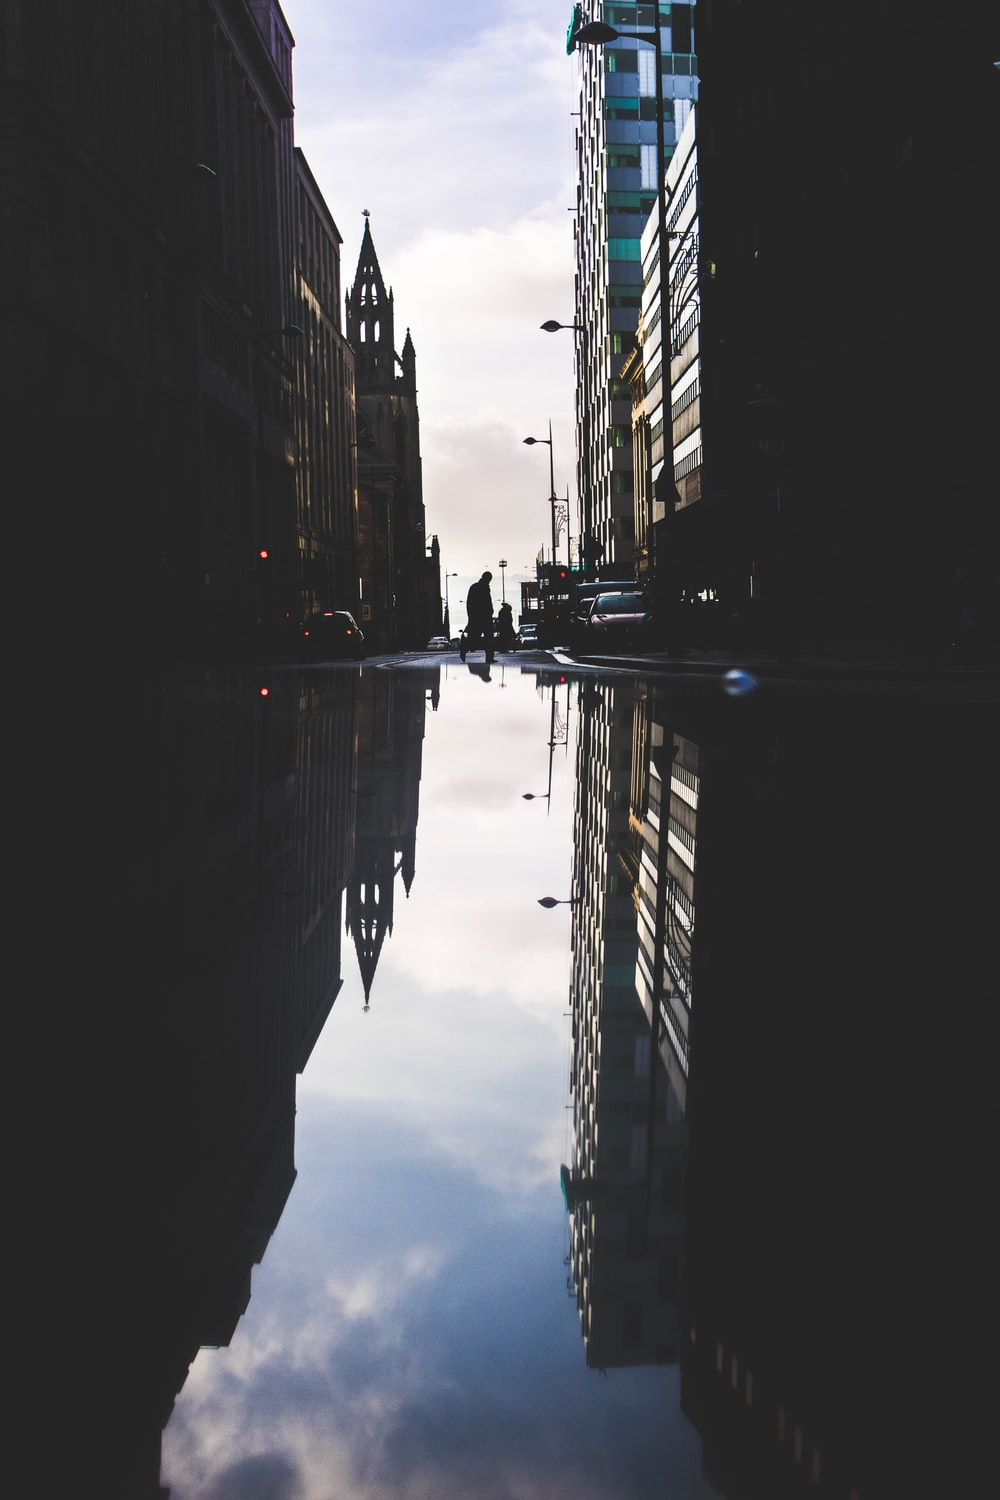 landscape photography of high-rise buildings with reflection on the water